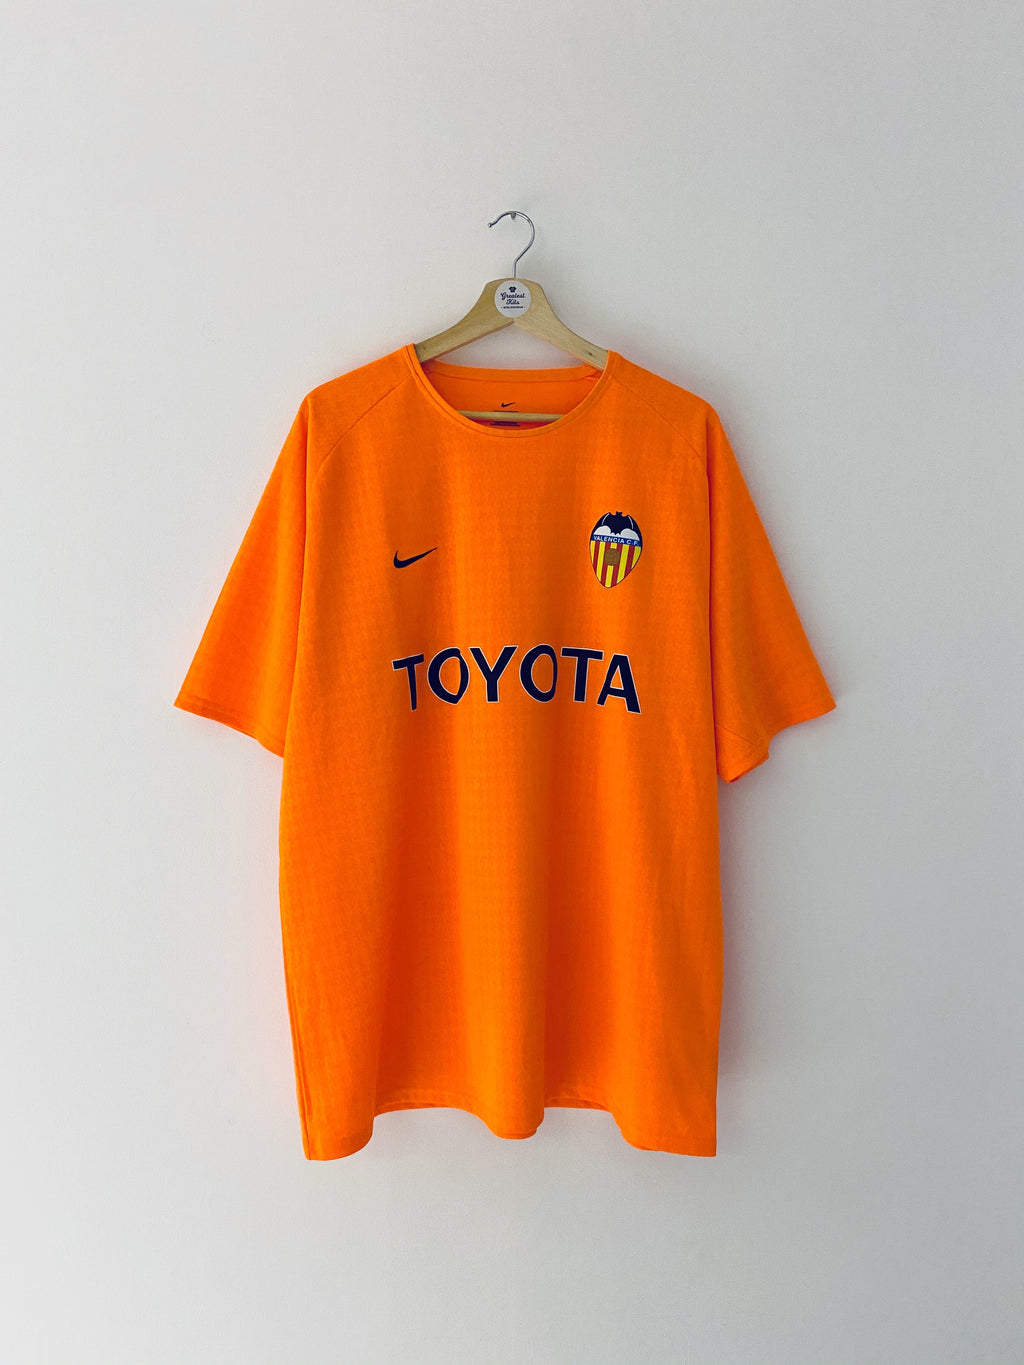 2003/04 Valencia Basic Away Shirt (XL) 9.5/10